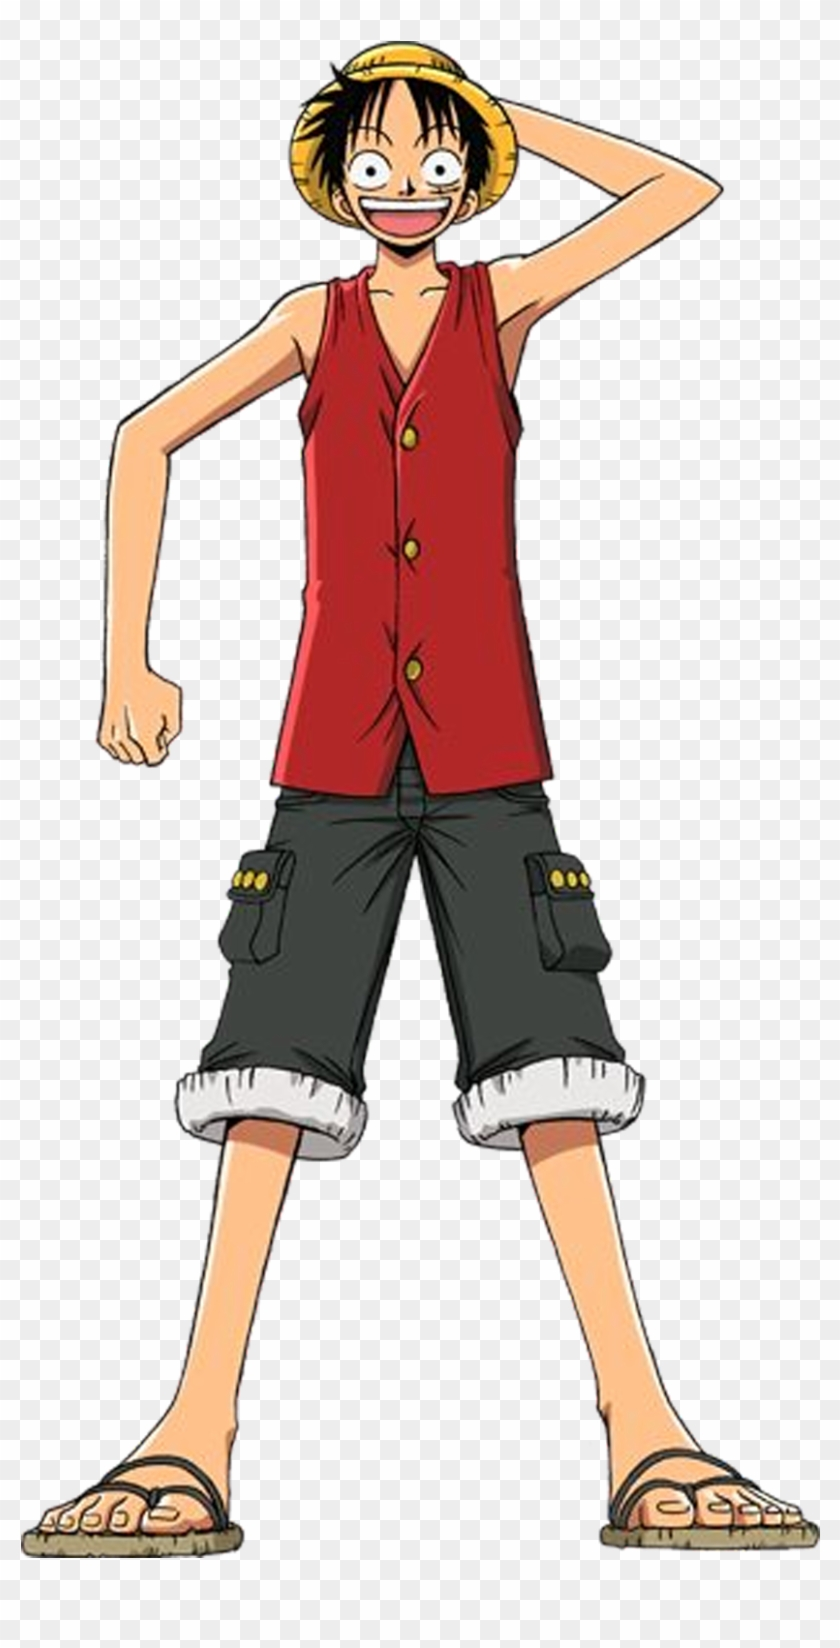 Monkey D Luffy Water One Piece Luffy Full Body Hd Png